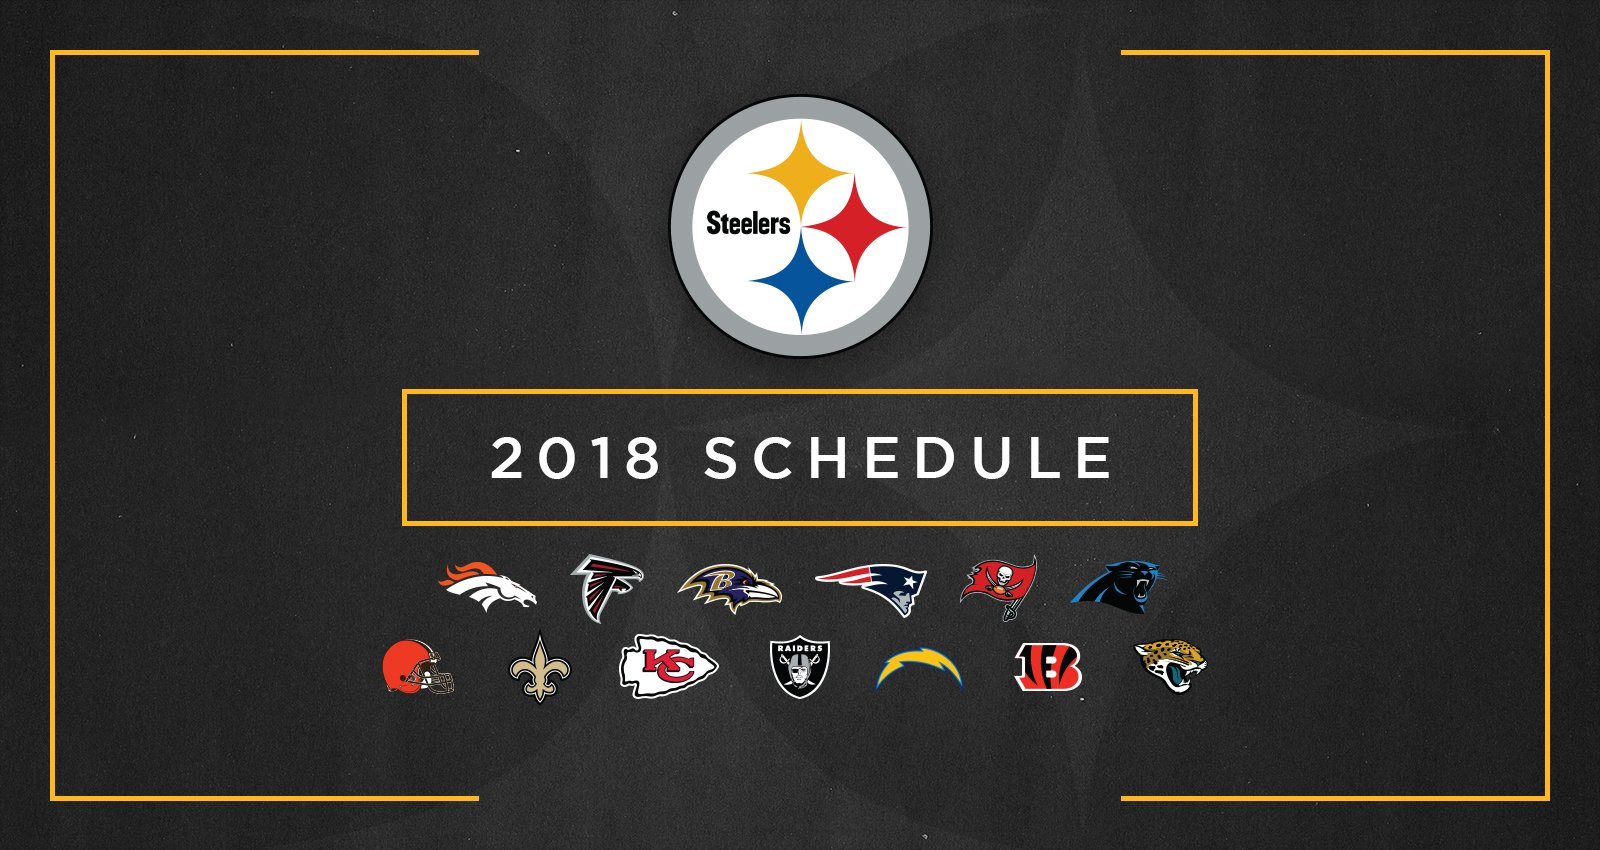 Our 2018 regular season schedule has been announced. #ScheduleRelease2018  SCHEDULE: https://t.co/D3K1FV353T https://t.co/ZAk2eMgpM3